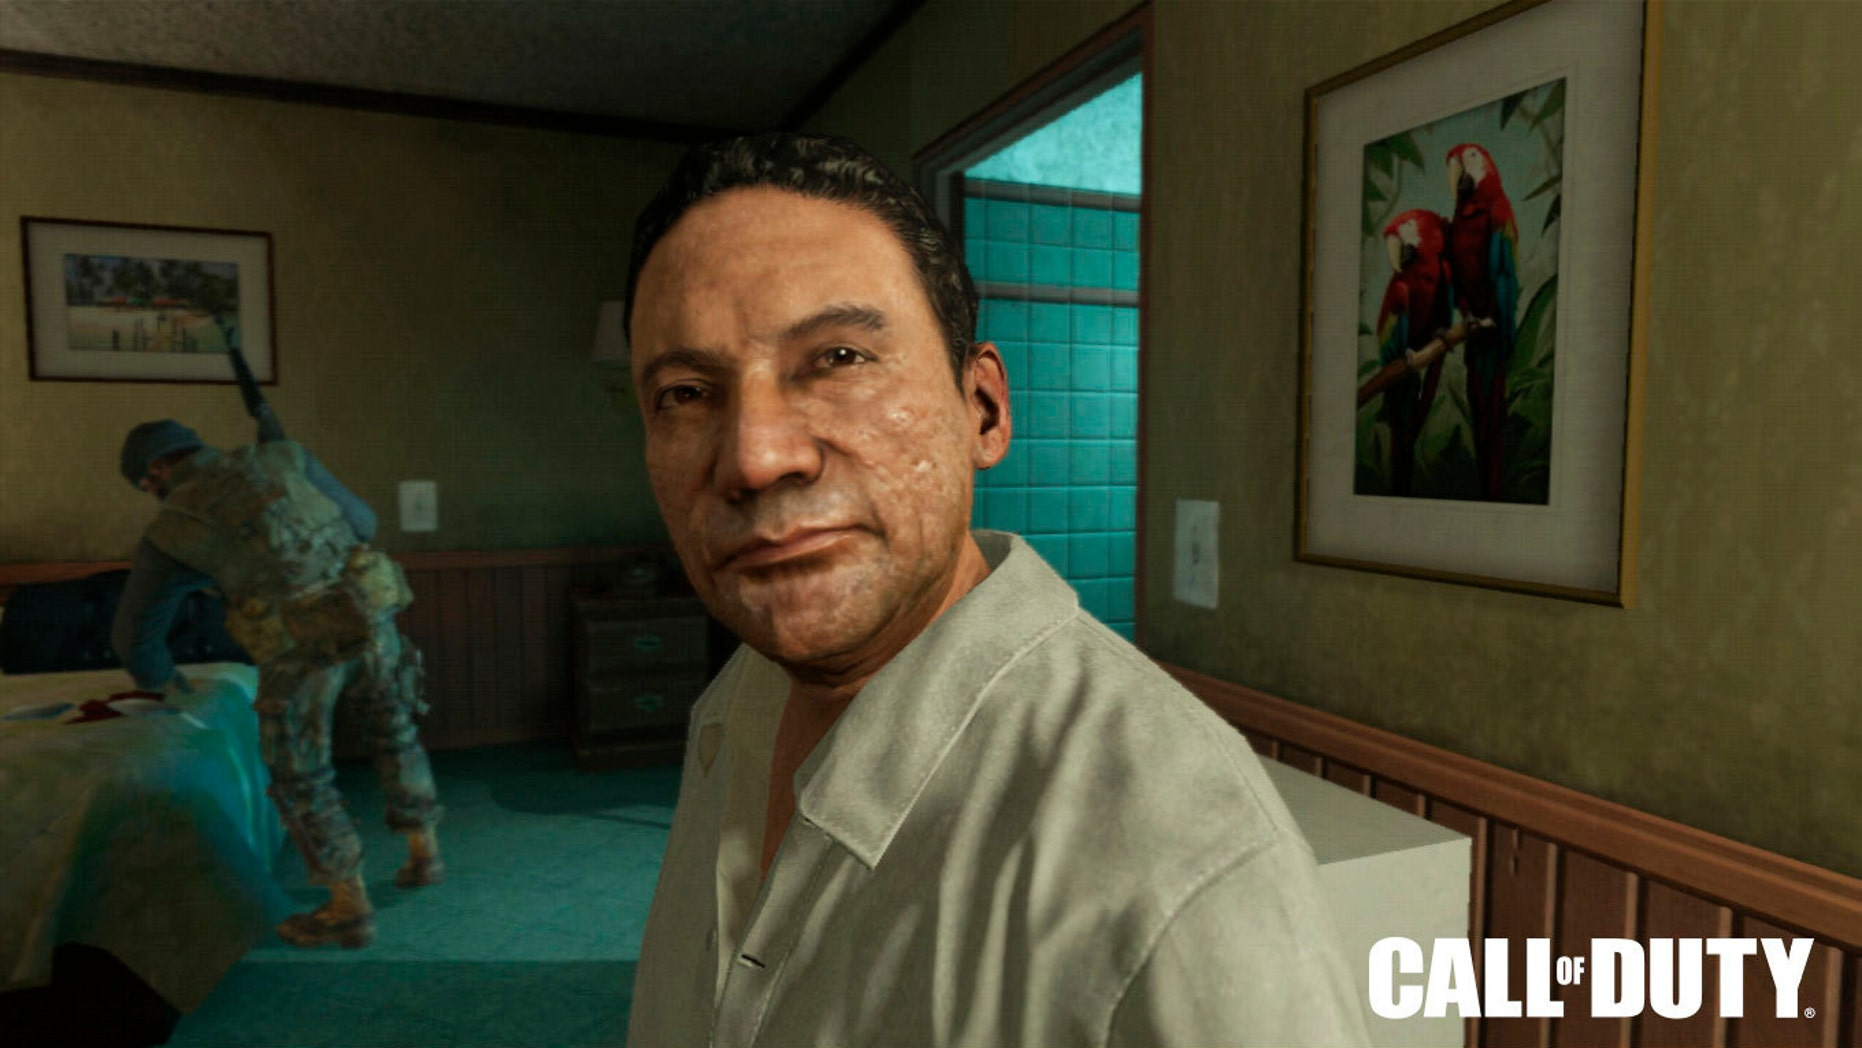 """This image provided by Activision Blizzard Inc. shows Manuel Noriega as depicted in the game publisher's 2012 game, """"Call of Duty: Black Ops II."""""""